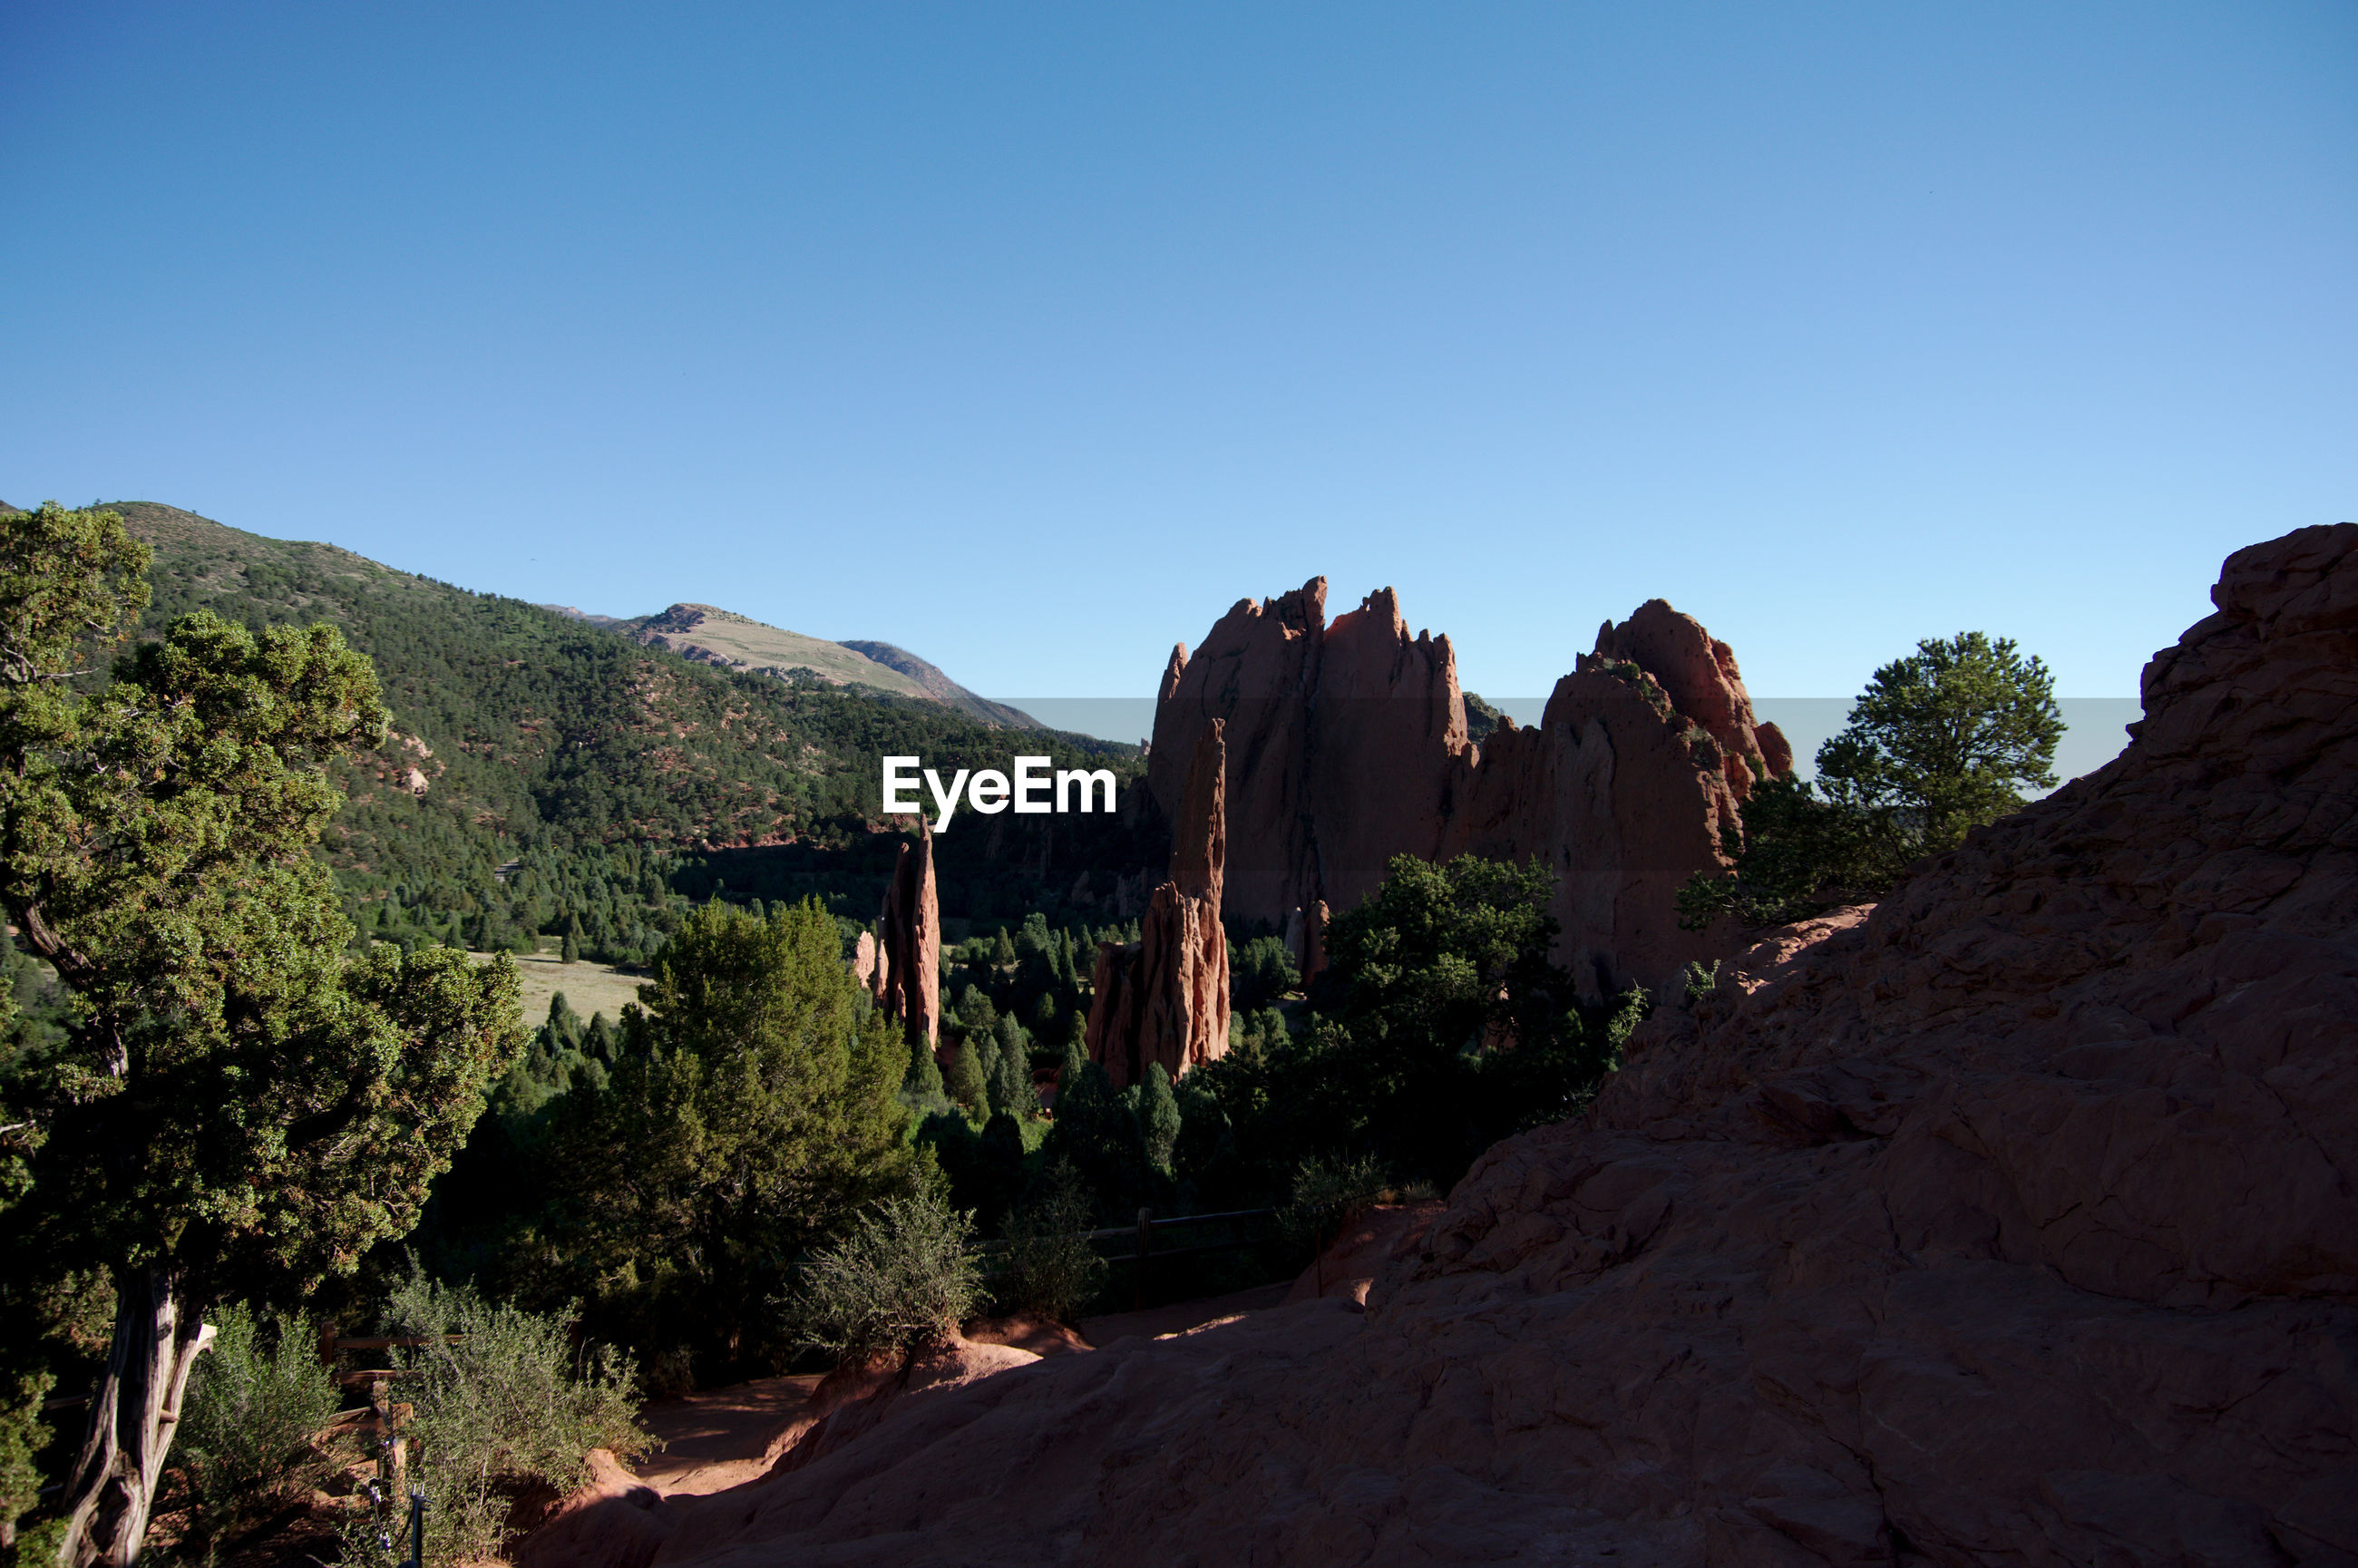 PANORAMIC VIEW OF ROCKS AGAINST CLEAR SKY